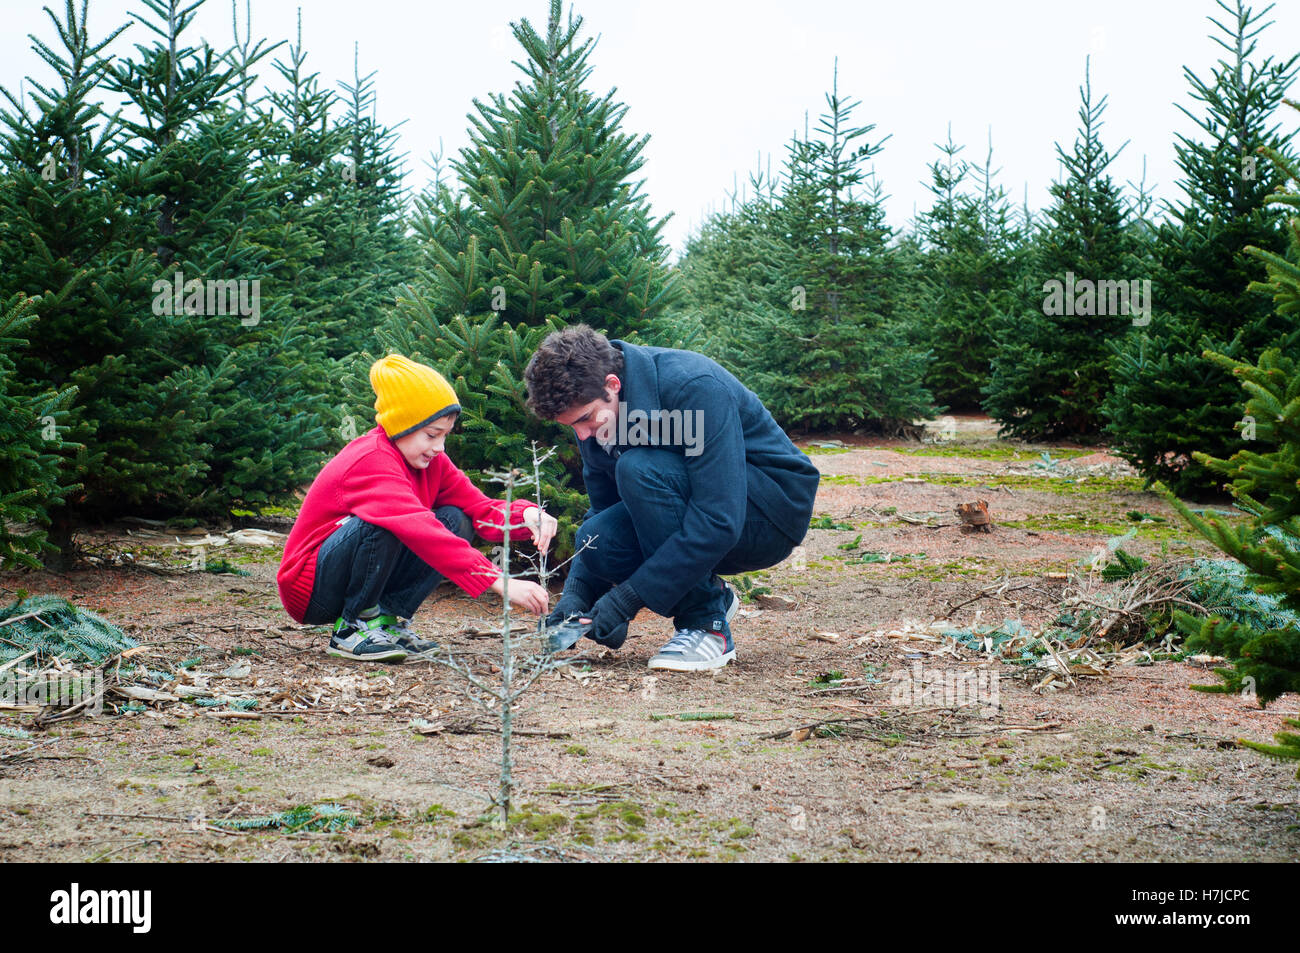 two brothers having fun at a cut your own christmas tree farm stock image - Cut Your Own Christmas Tree Farm